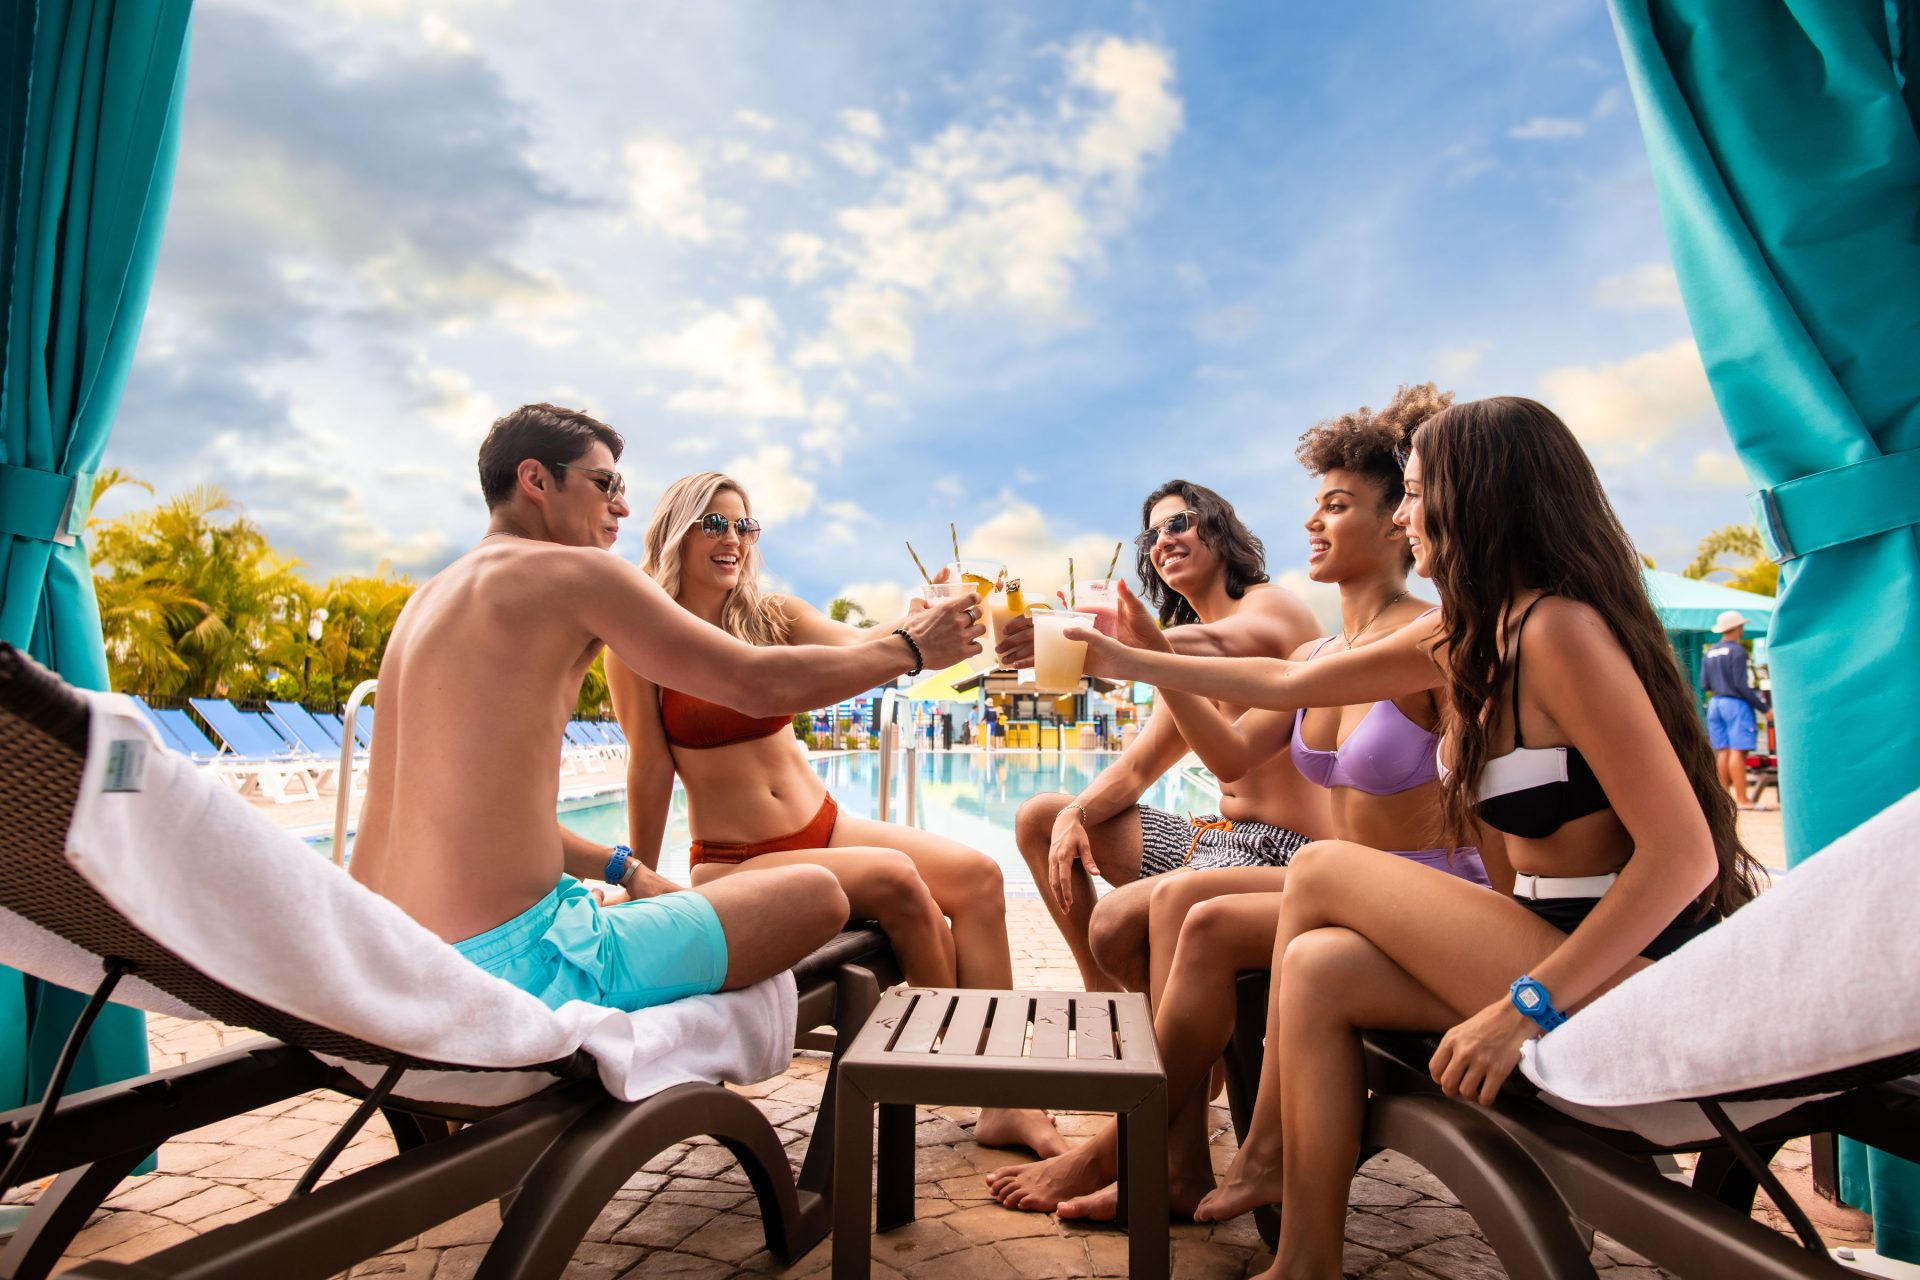 guests enjoying cocktails near water park pool